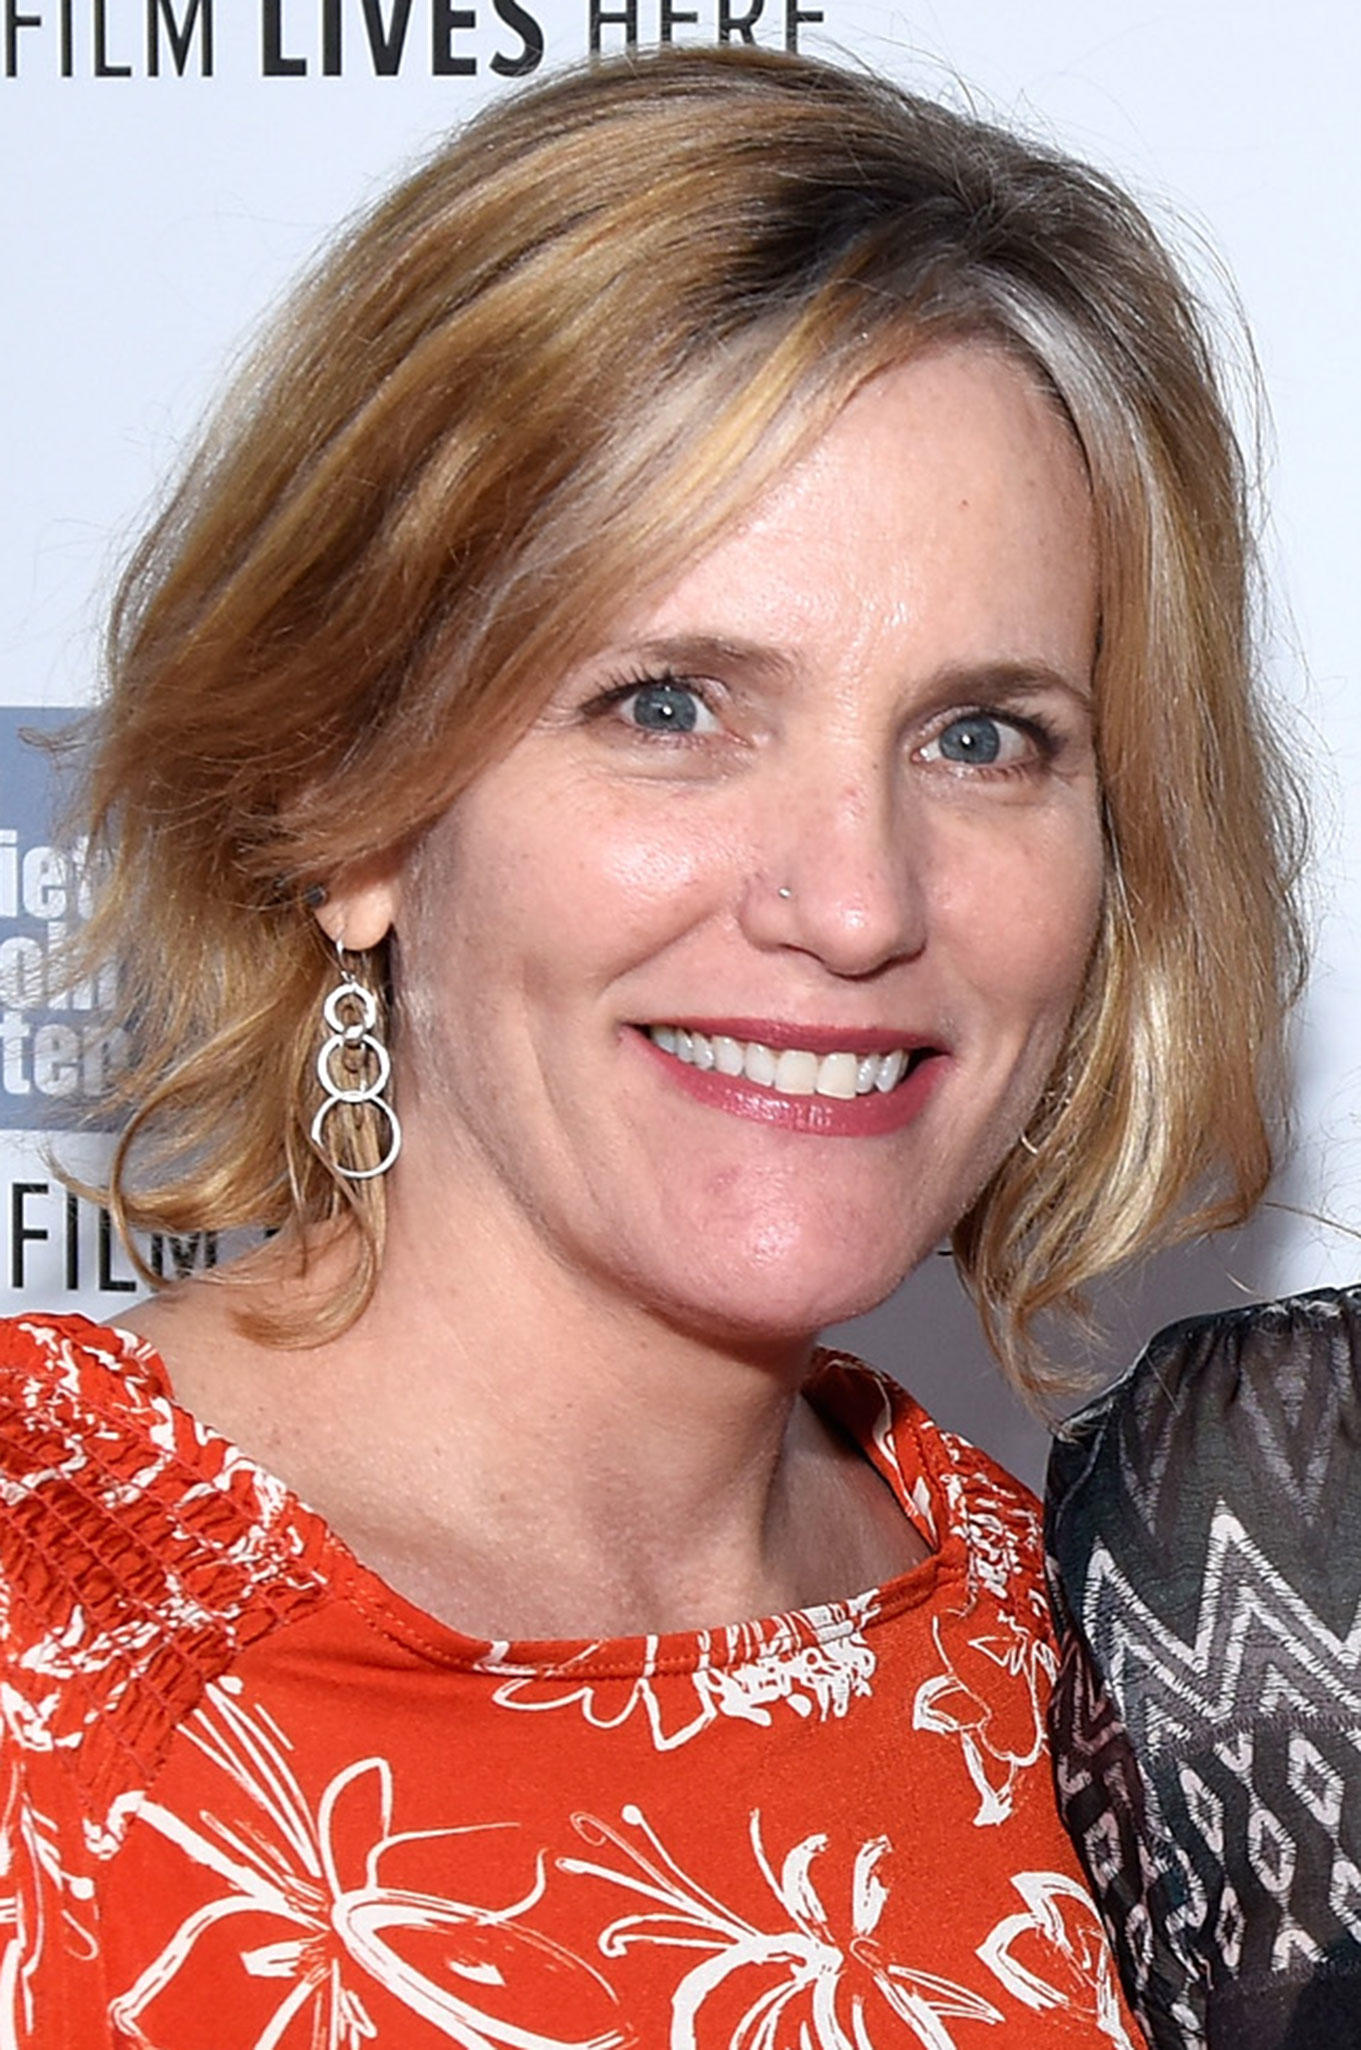 Mary Kerr at the New York Film Festival premiere of